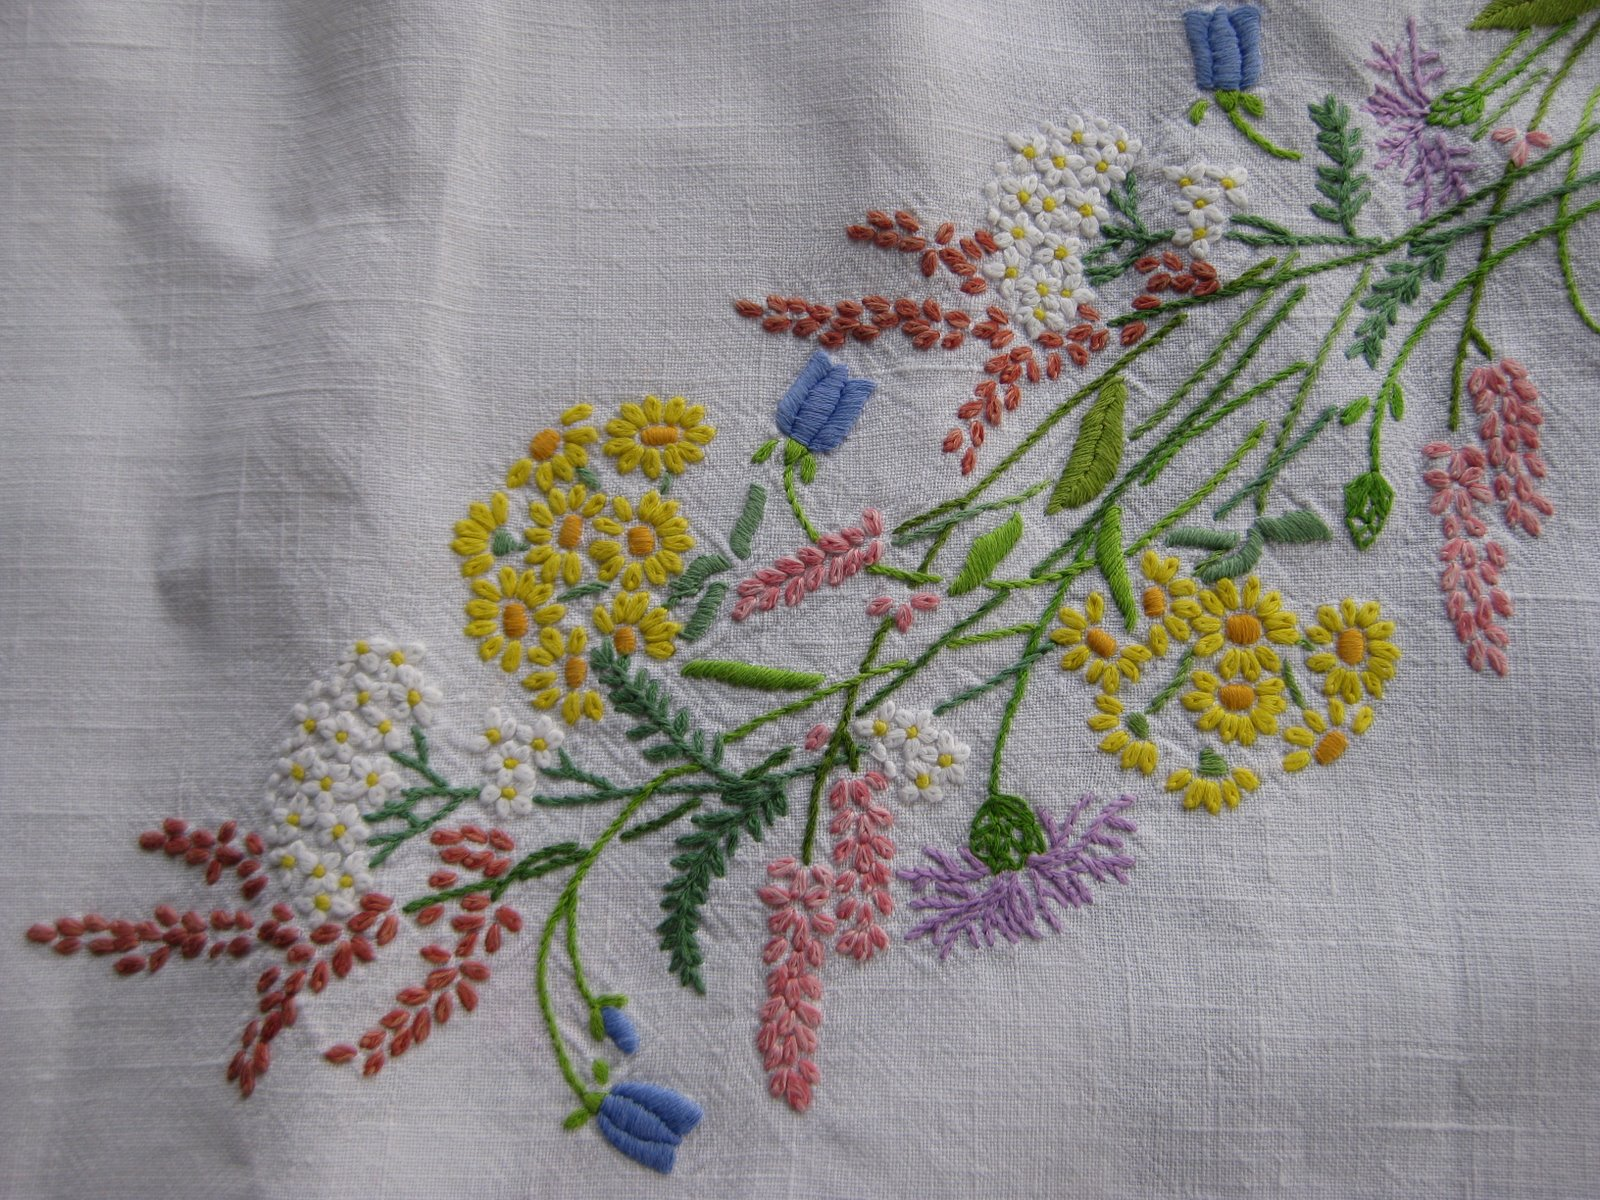 Tanglewood threads another embroidered bouquet of flowers